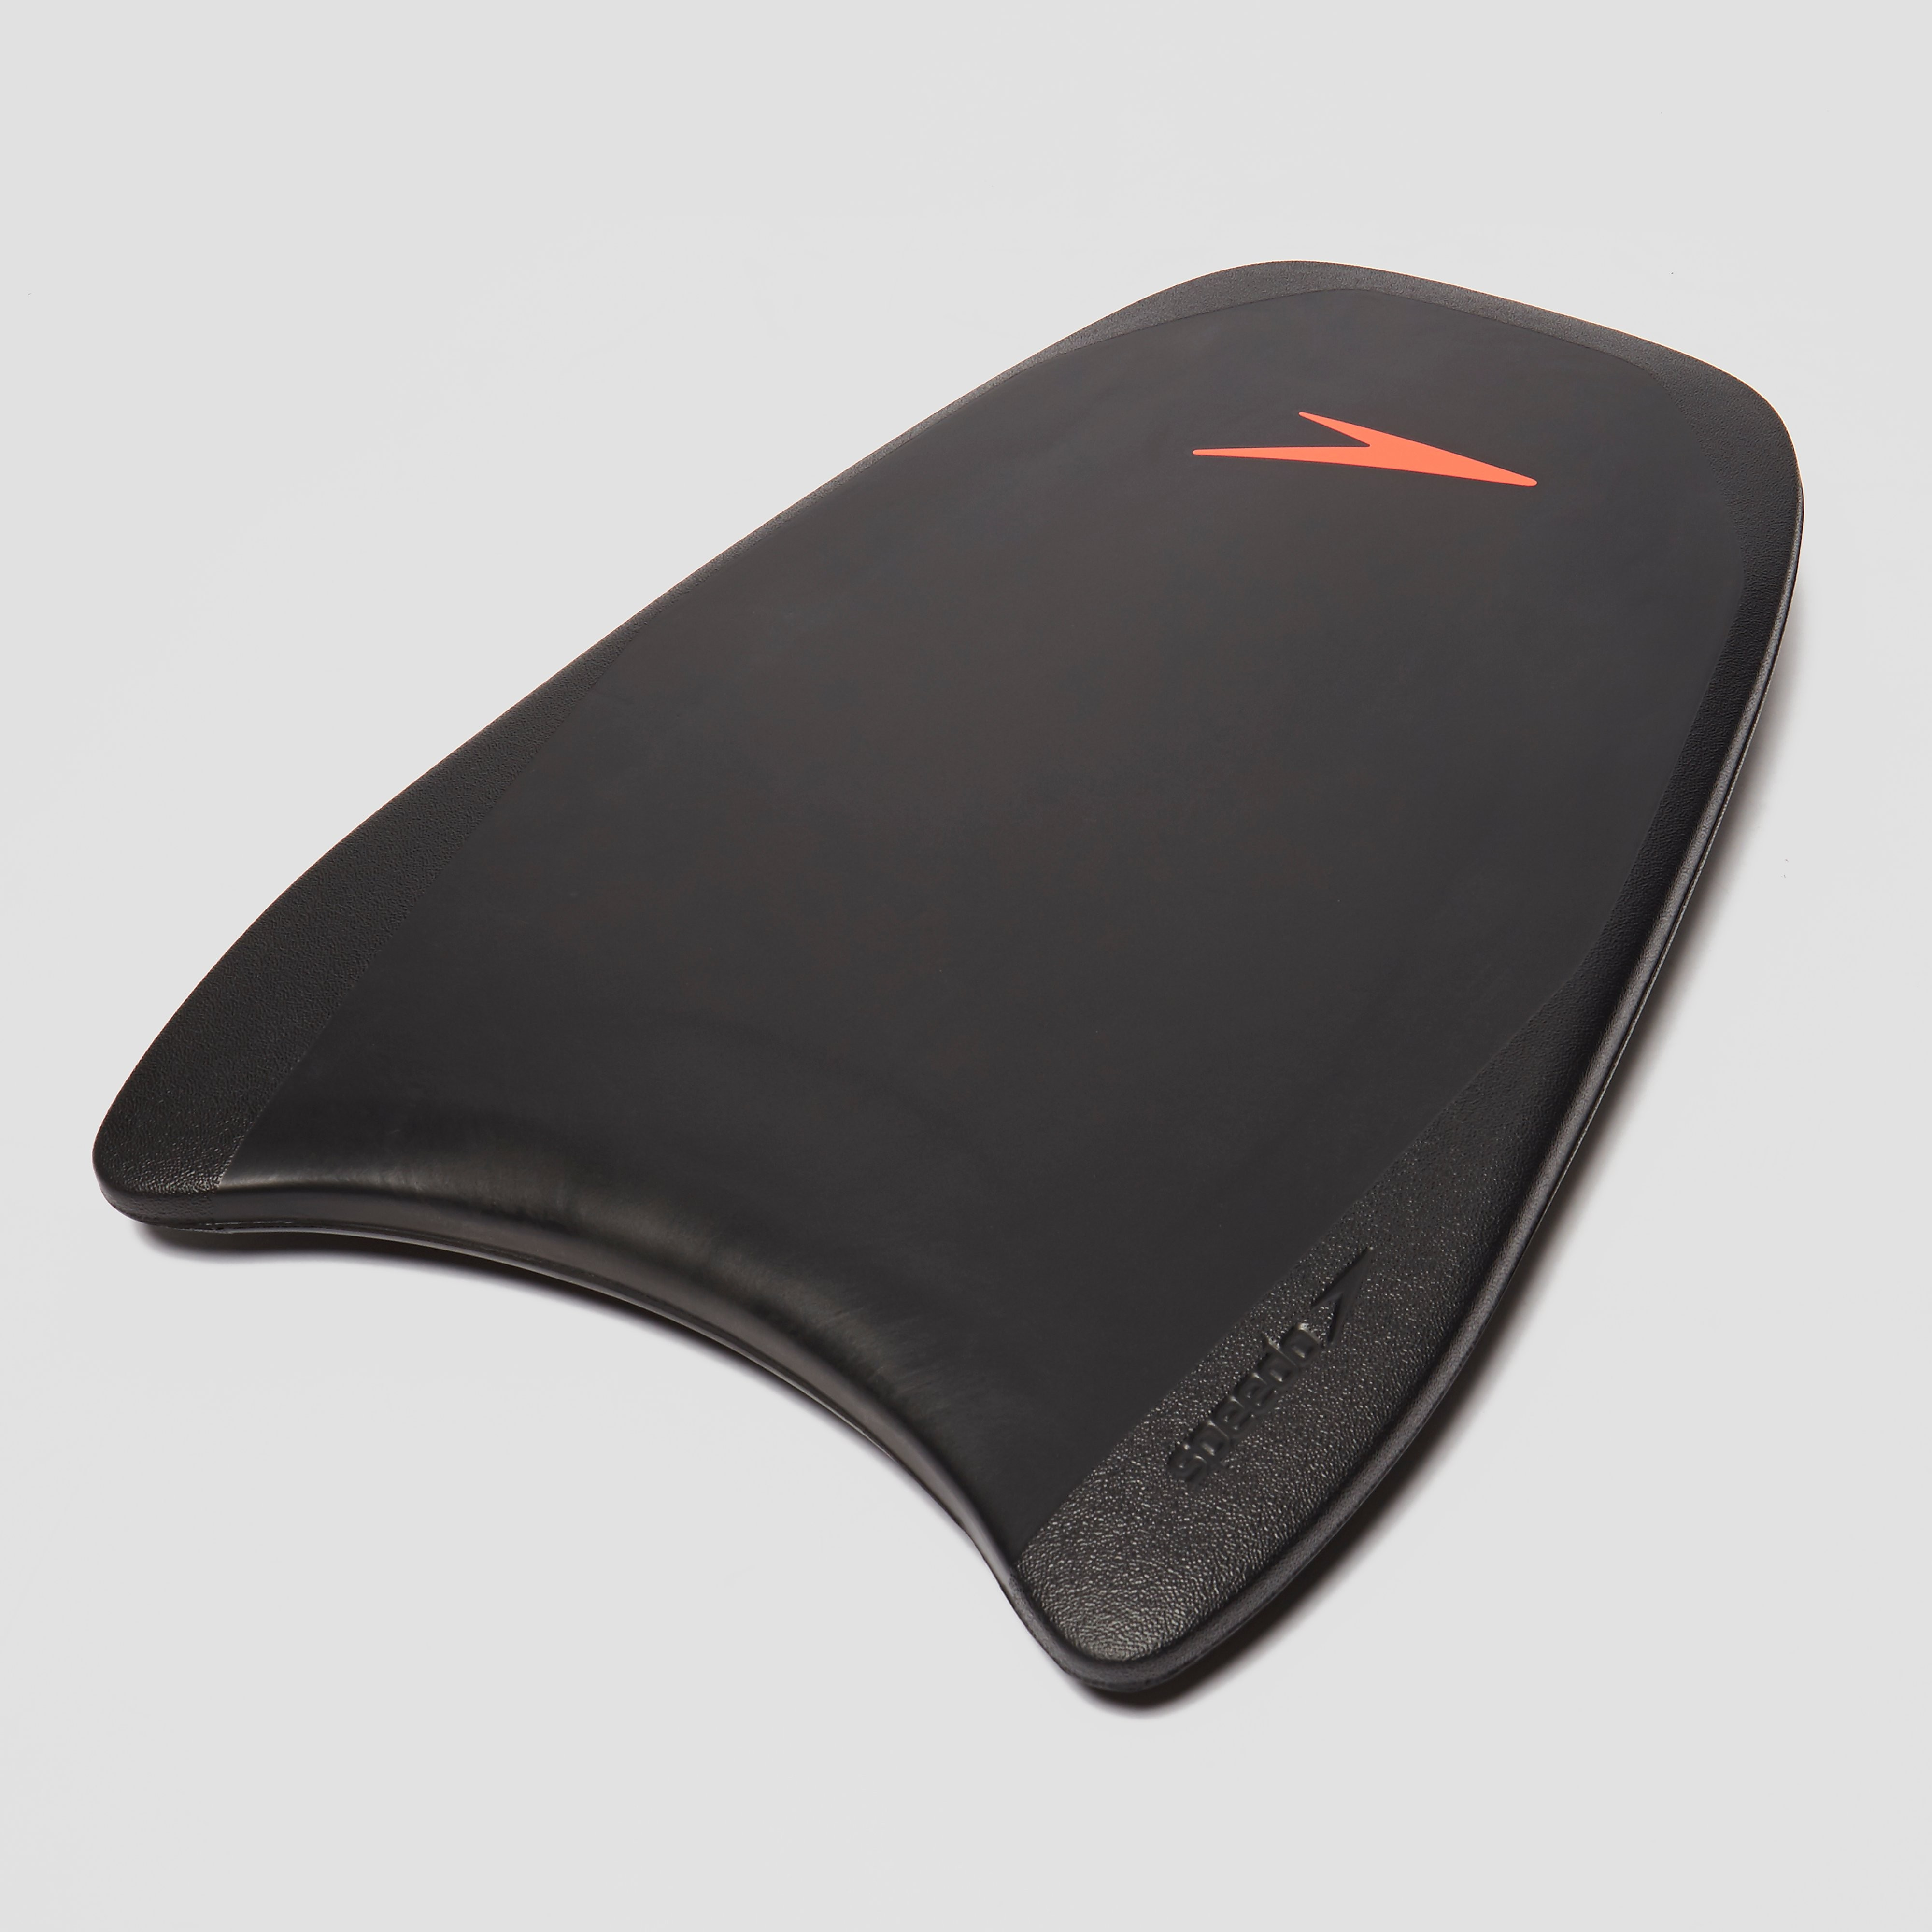 Speedo Fastskin Swimming Kickboard